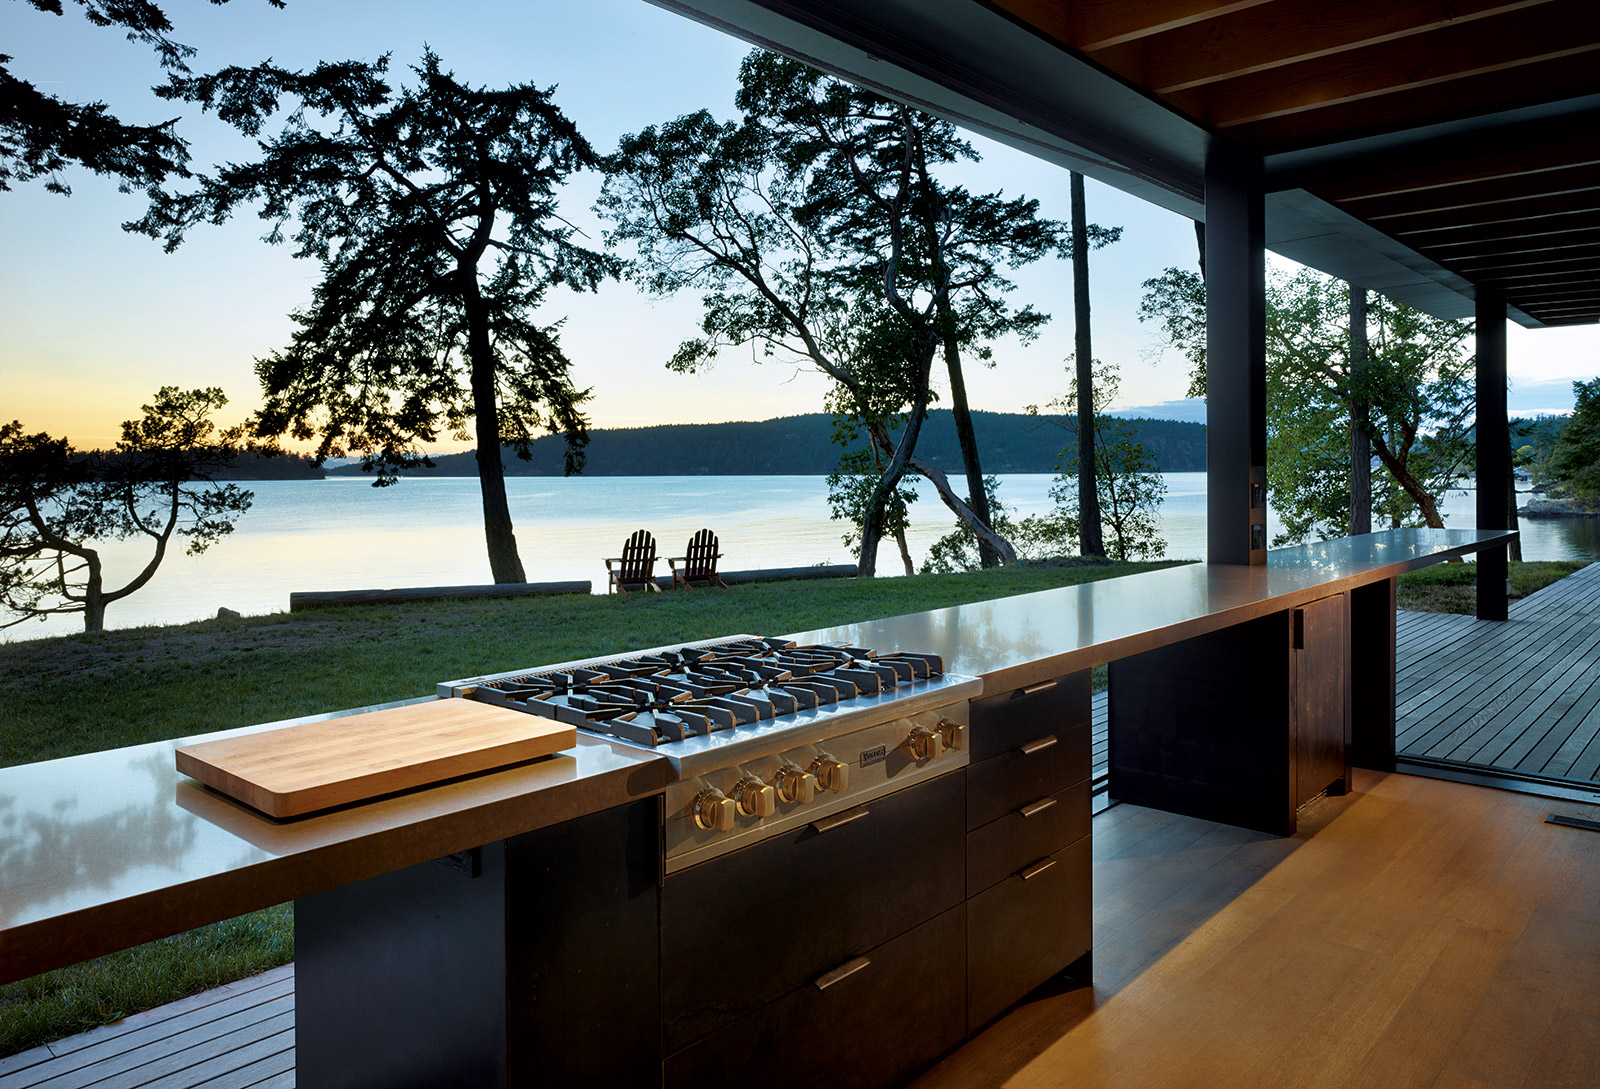 Living on the water: Pole House by Olson Kundig